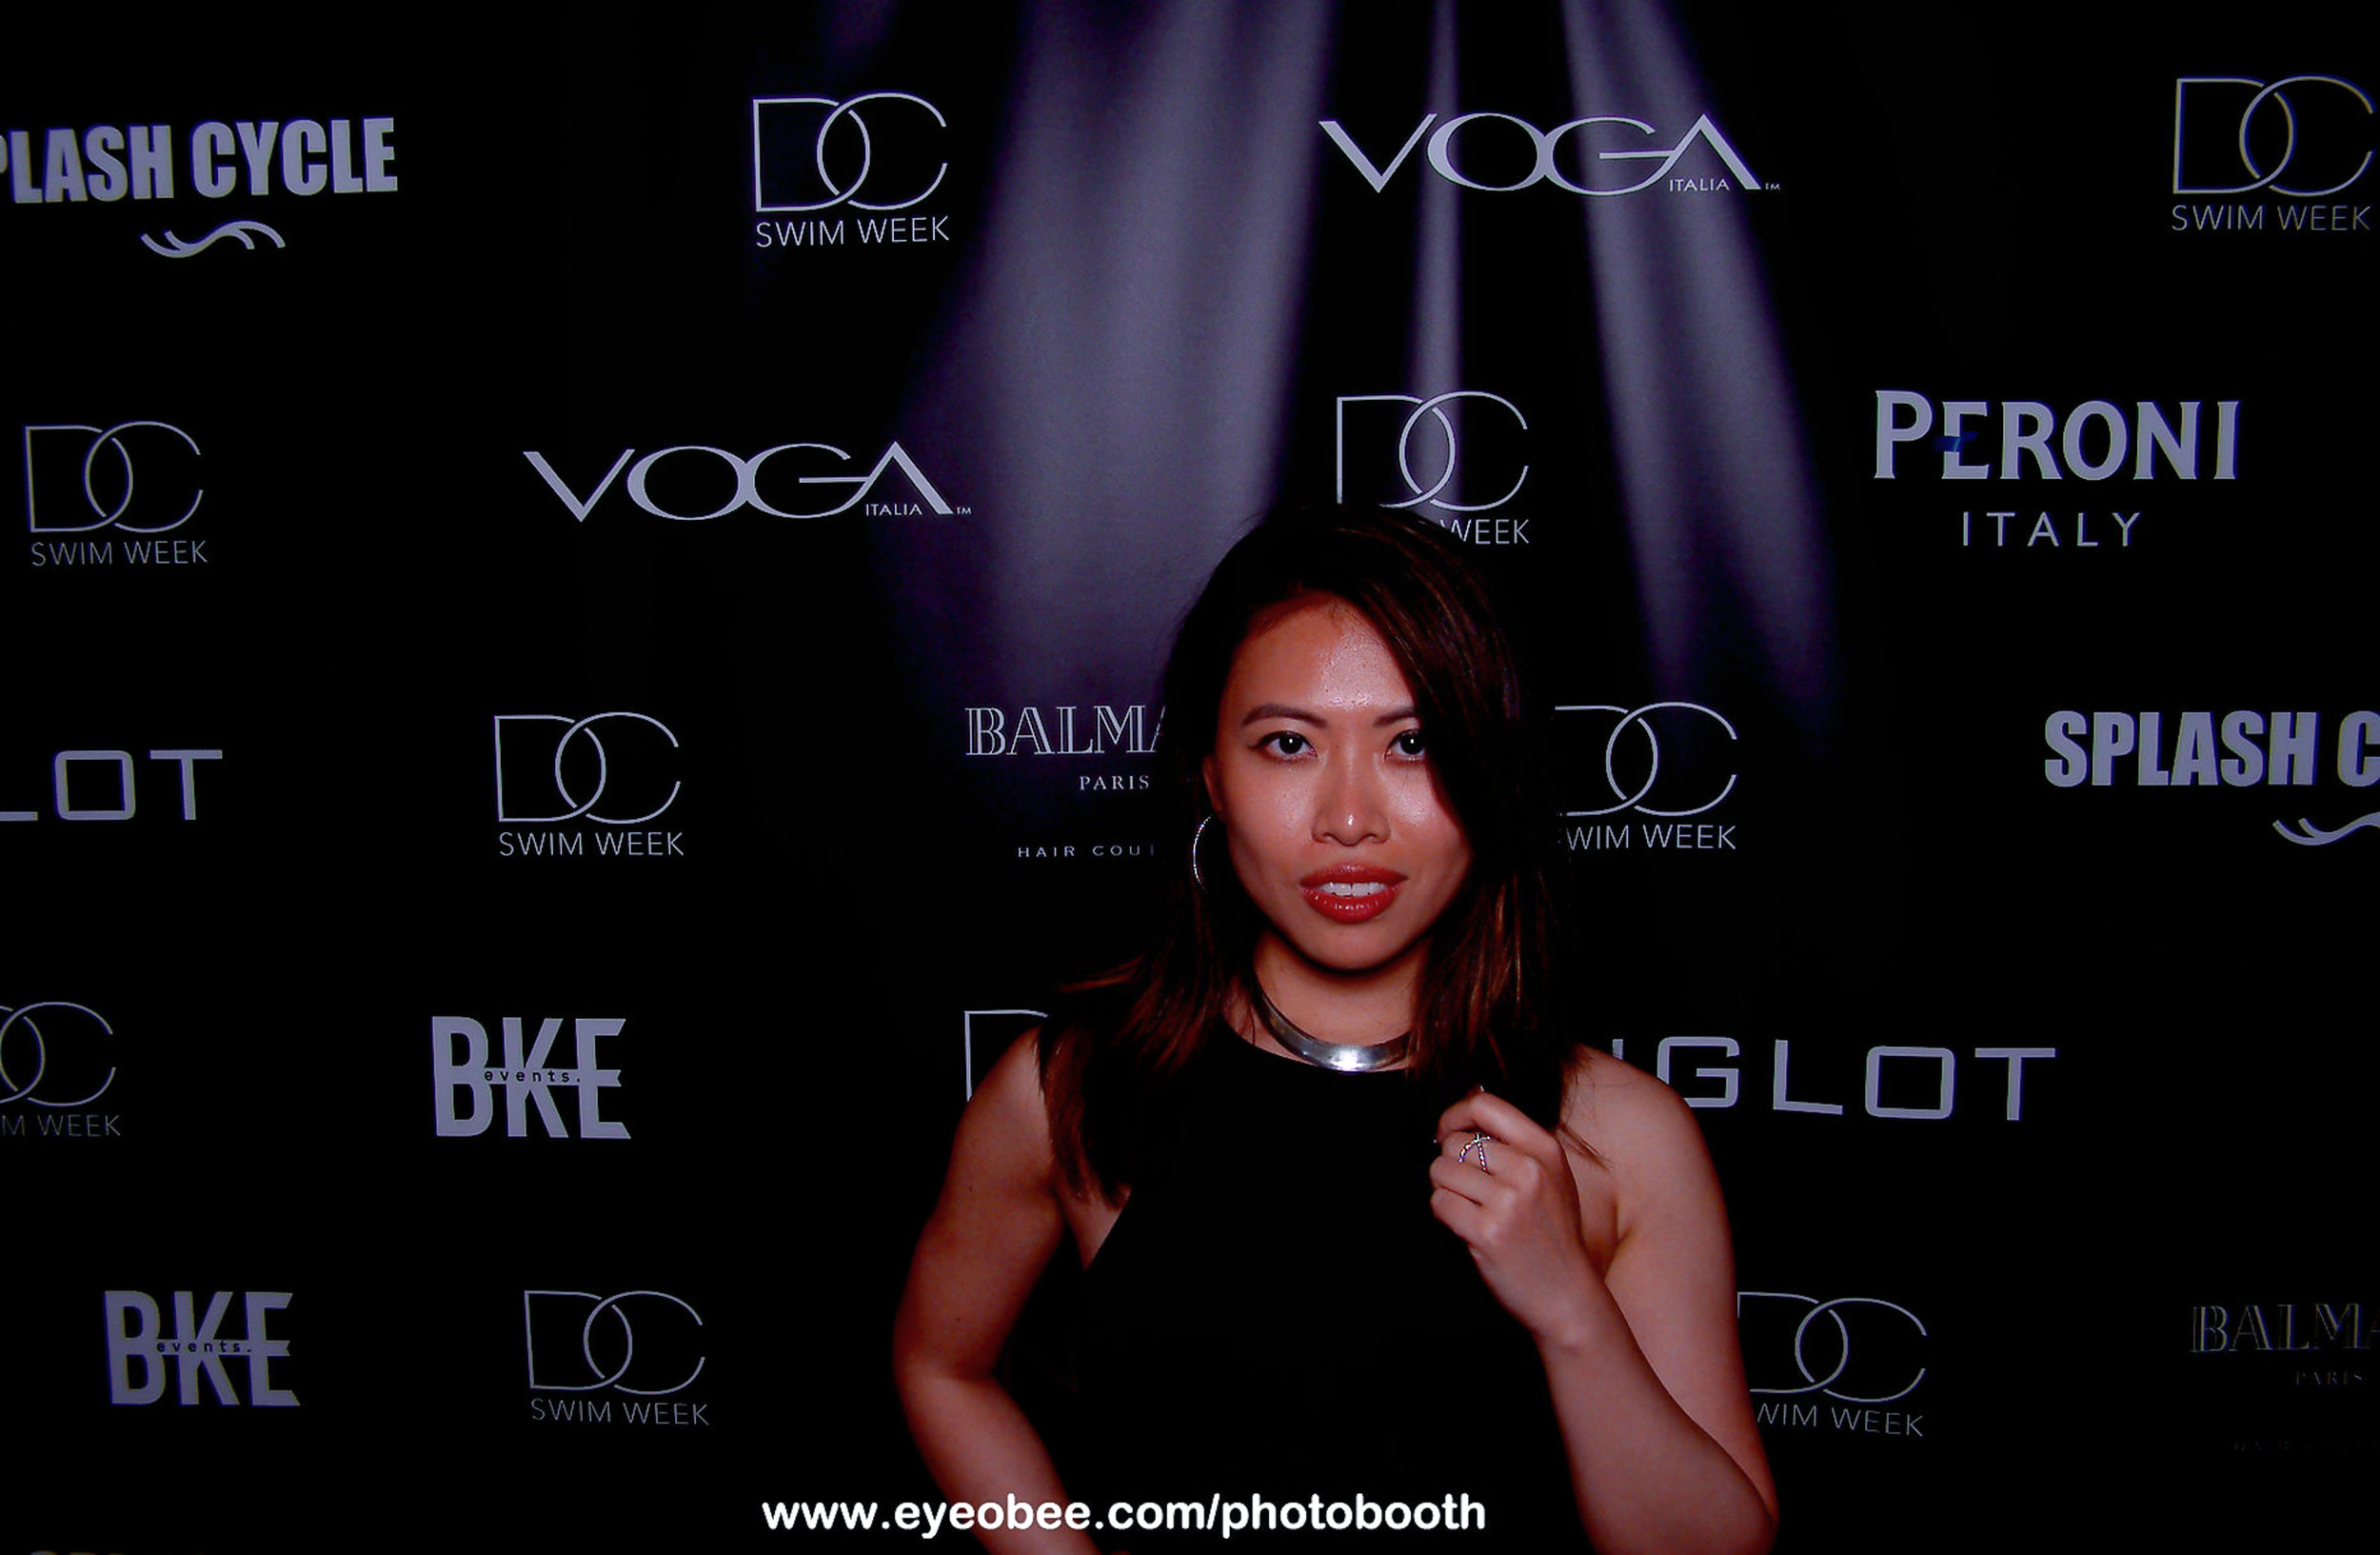 eyeobee PhotoBooth - DCSW-166.jpg